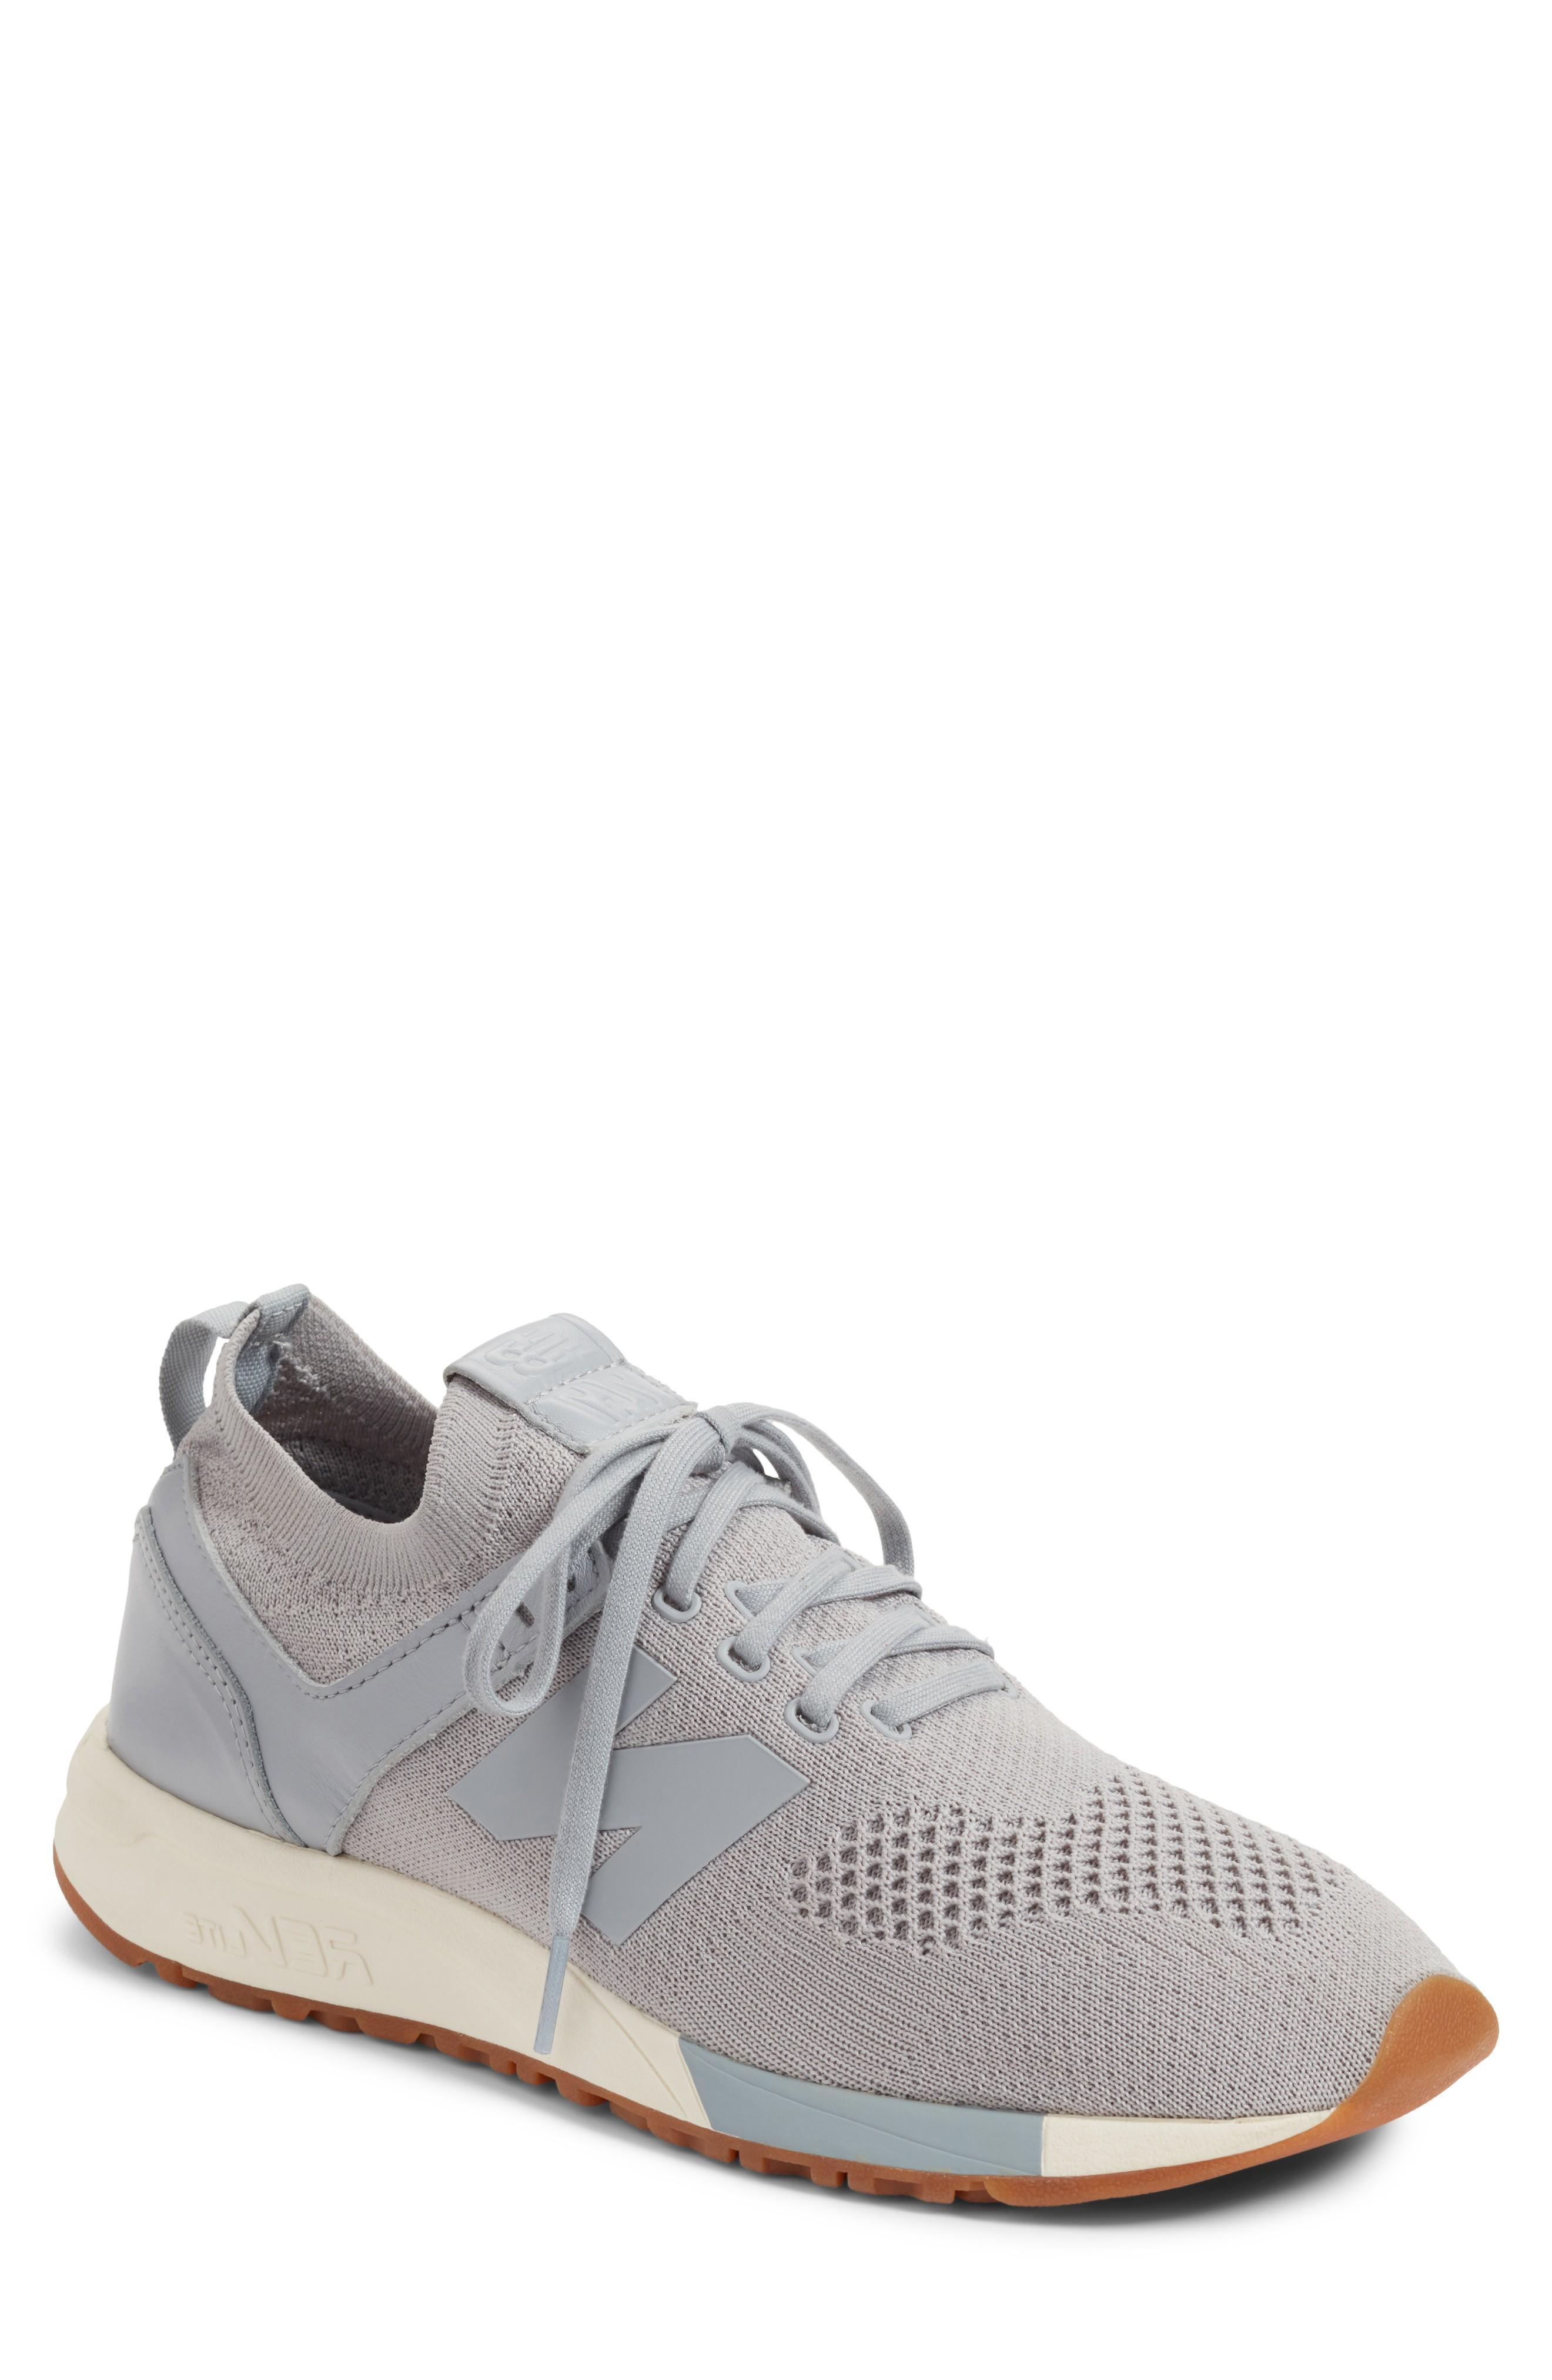 half off ee5af dd6e3 New Balance Men s 247 Decon Casual Sneakers From Finish Line In Grey White